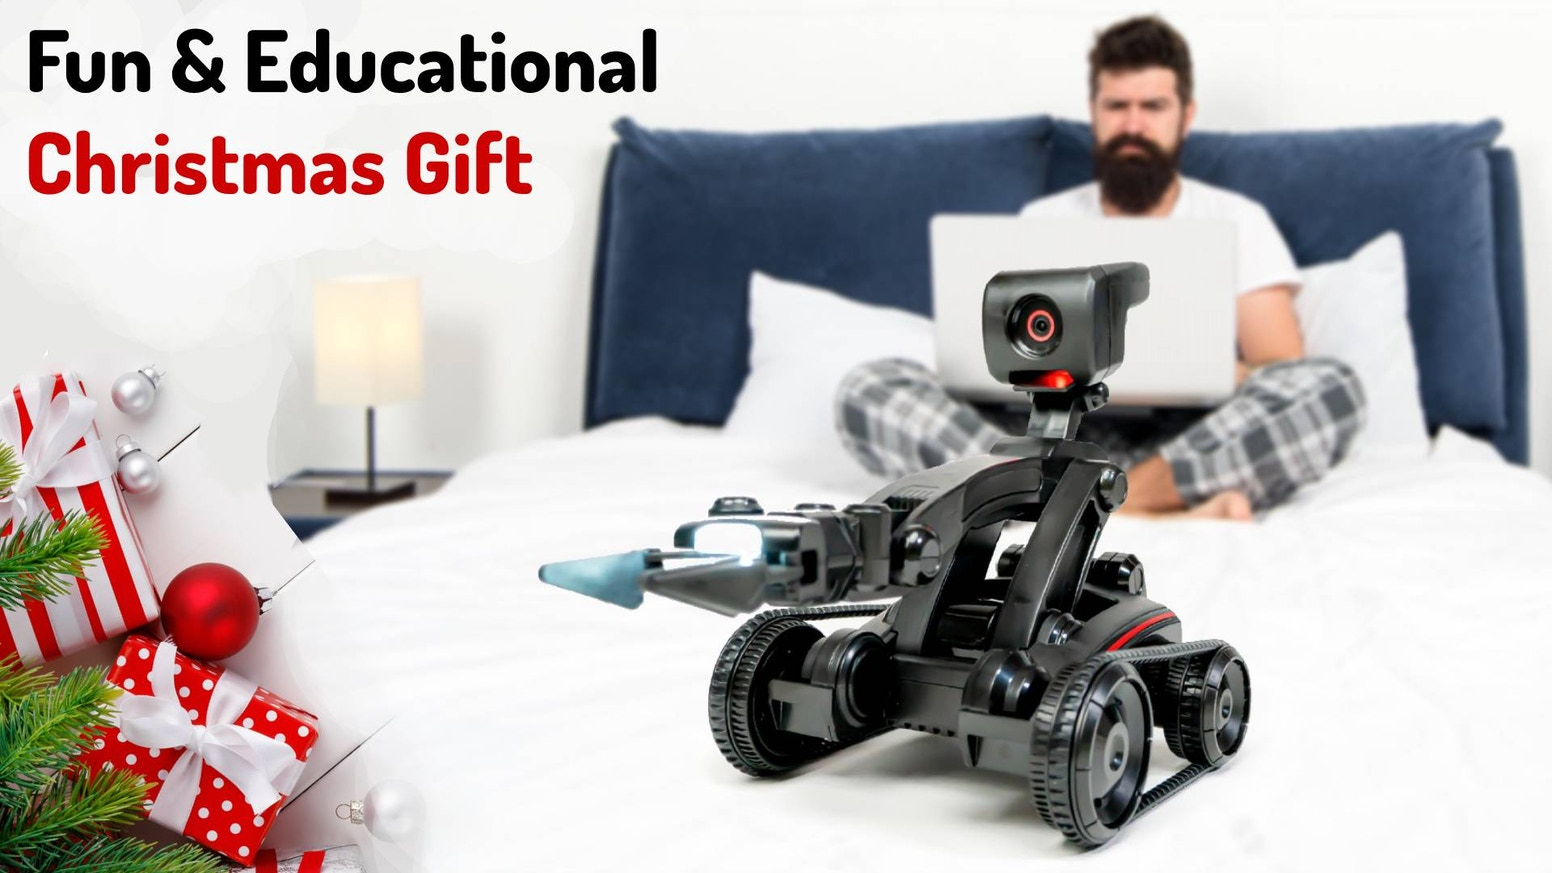 Learns to autonomously perform new tasks.   Has a robotic arm - it can do things for you.   Simple to program, beginner or advanced.